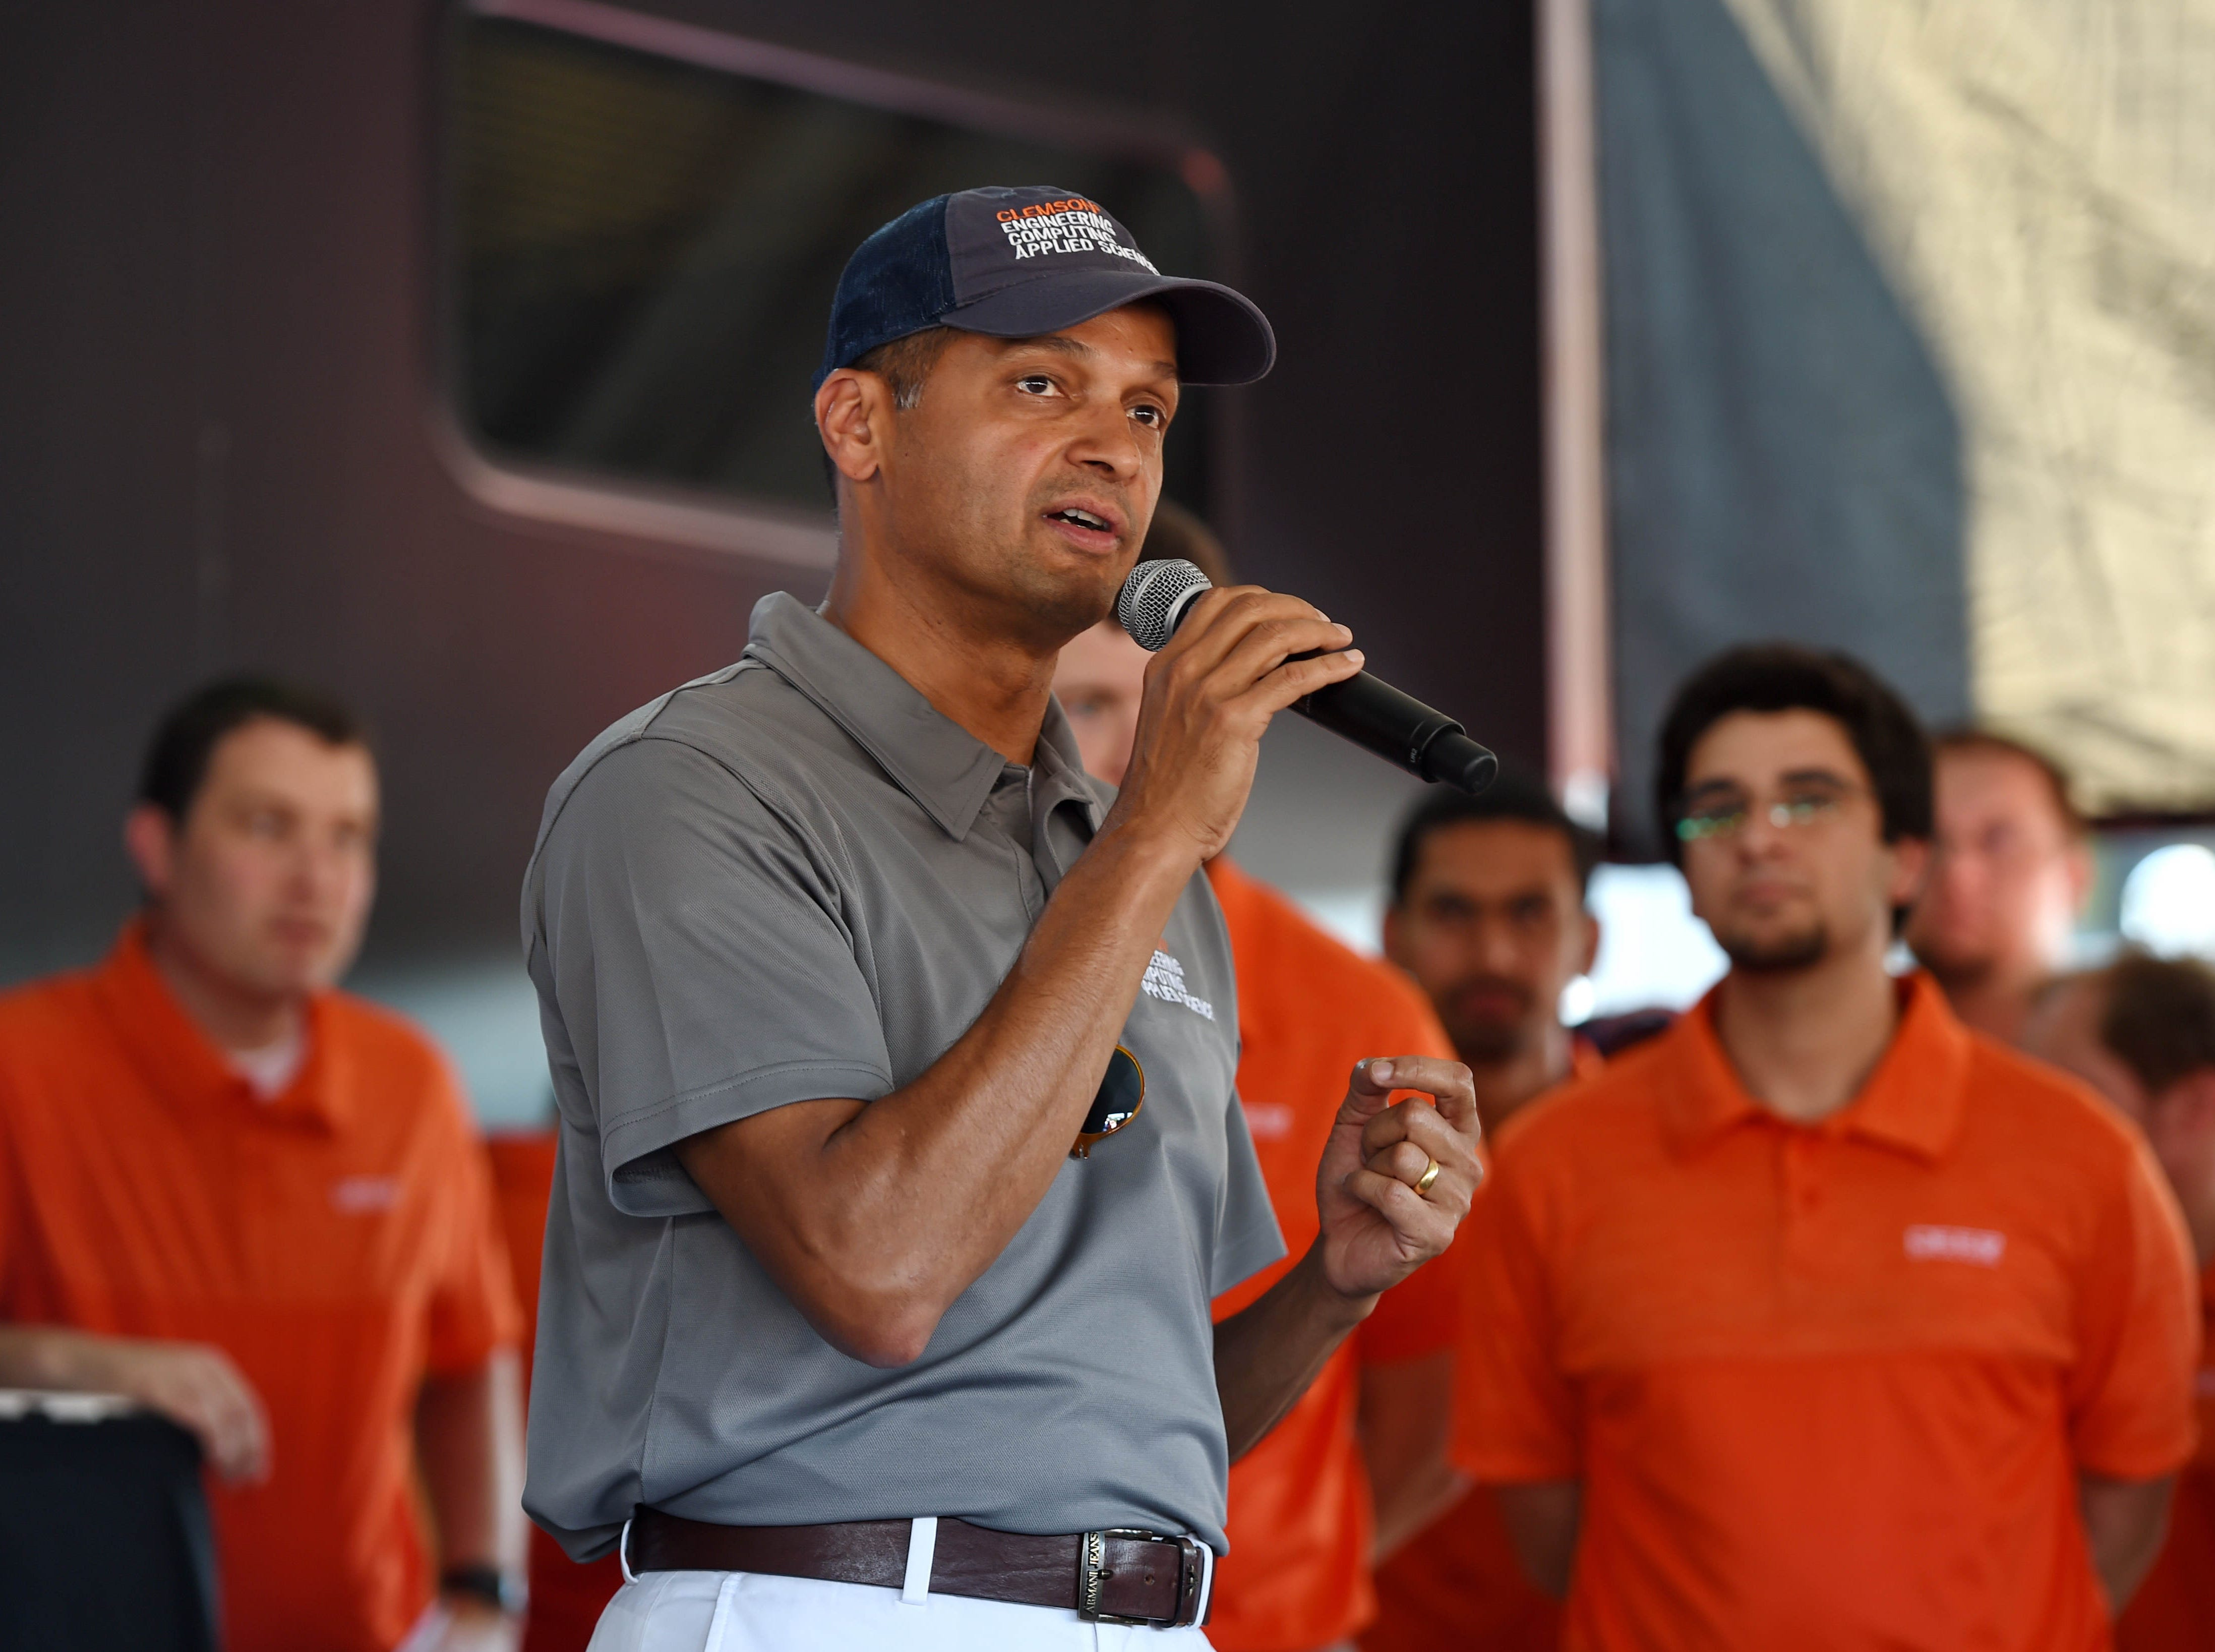 Dr. Anand Gramopadhye speaks to the crowd during the CU-ICAR unveiling of the new Deep Orange 9 rally car Saturday, October 6,  2018.